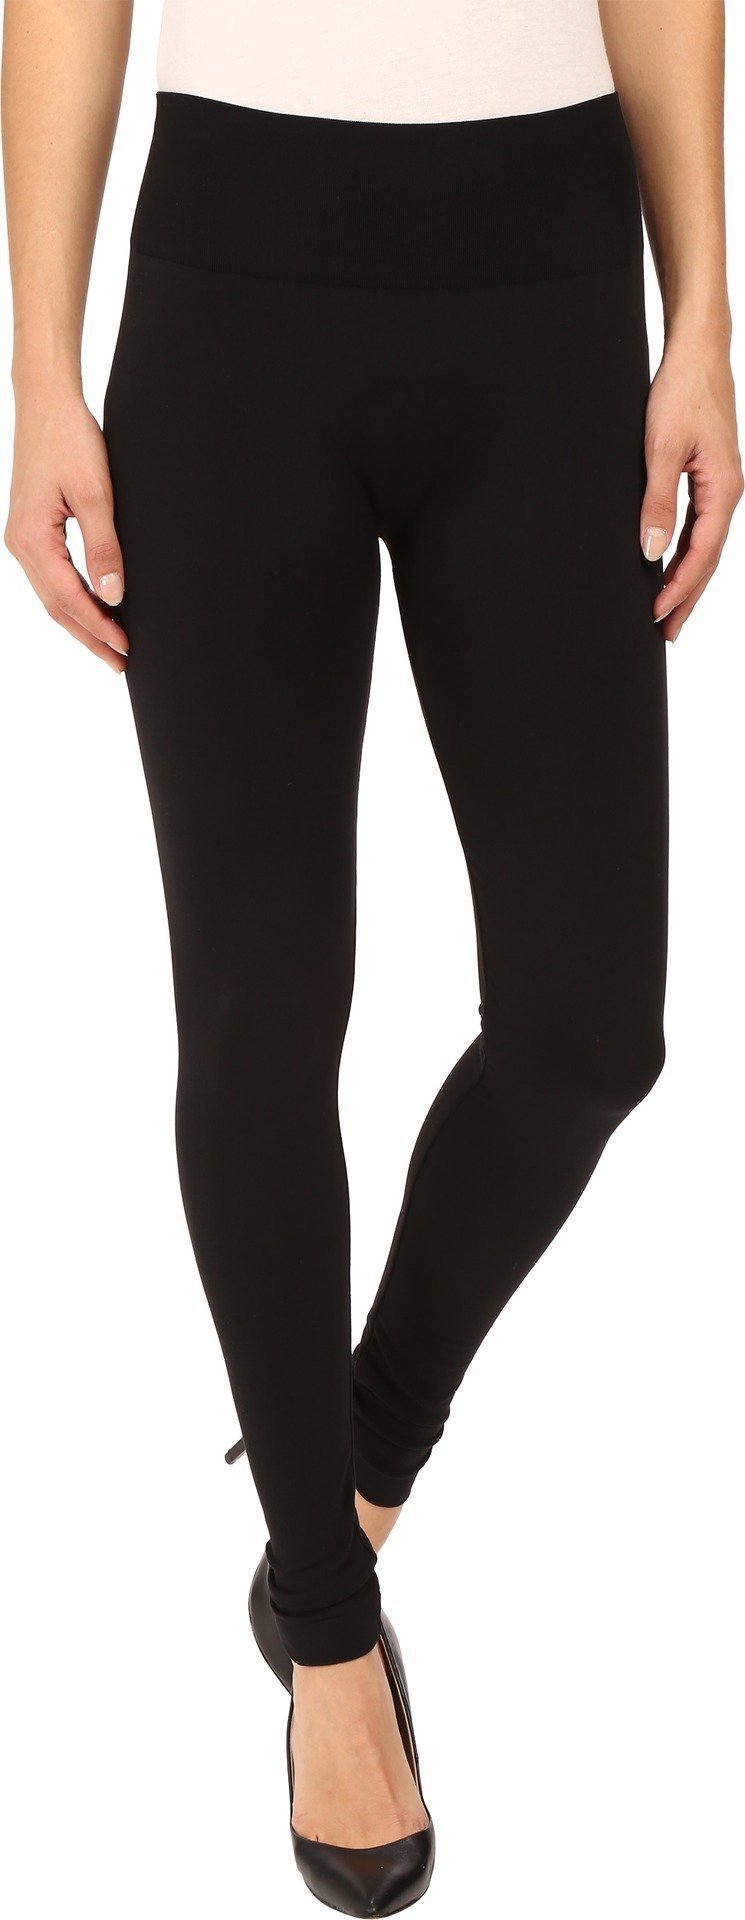 Wolford Women's Perfect Fit Leggings Black Pants SM